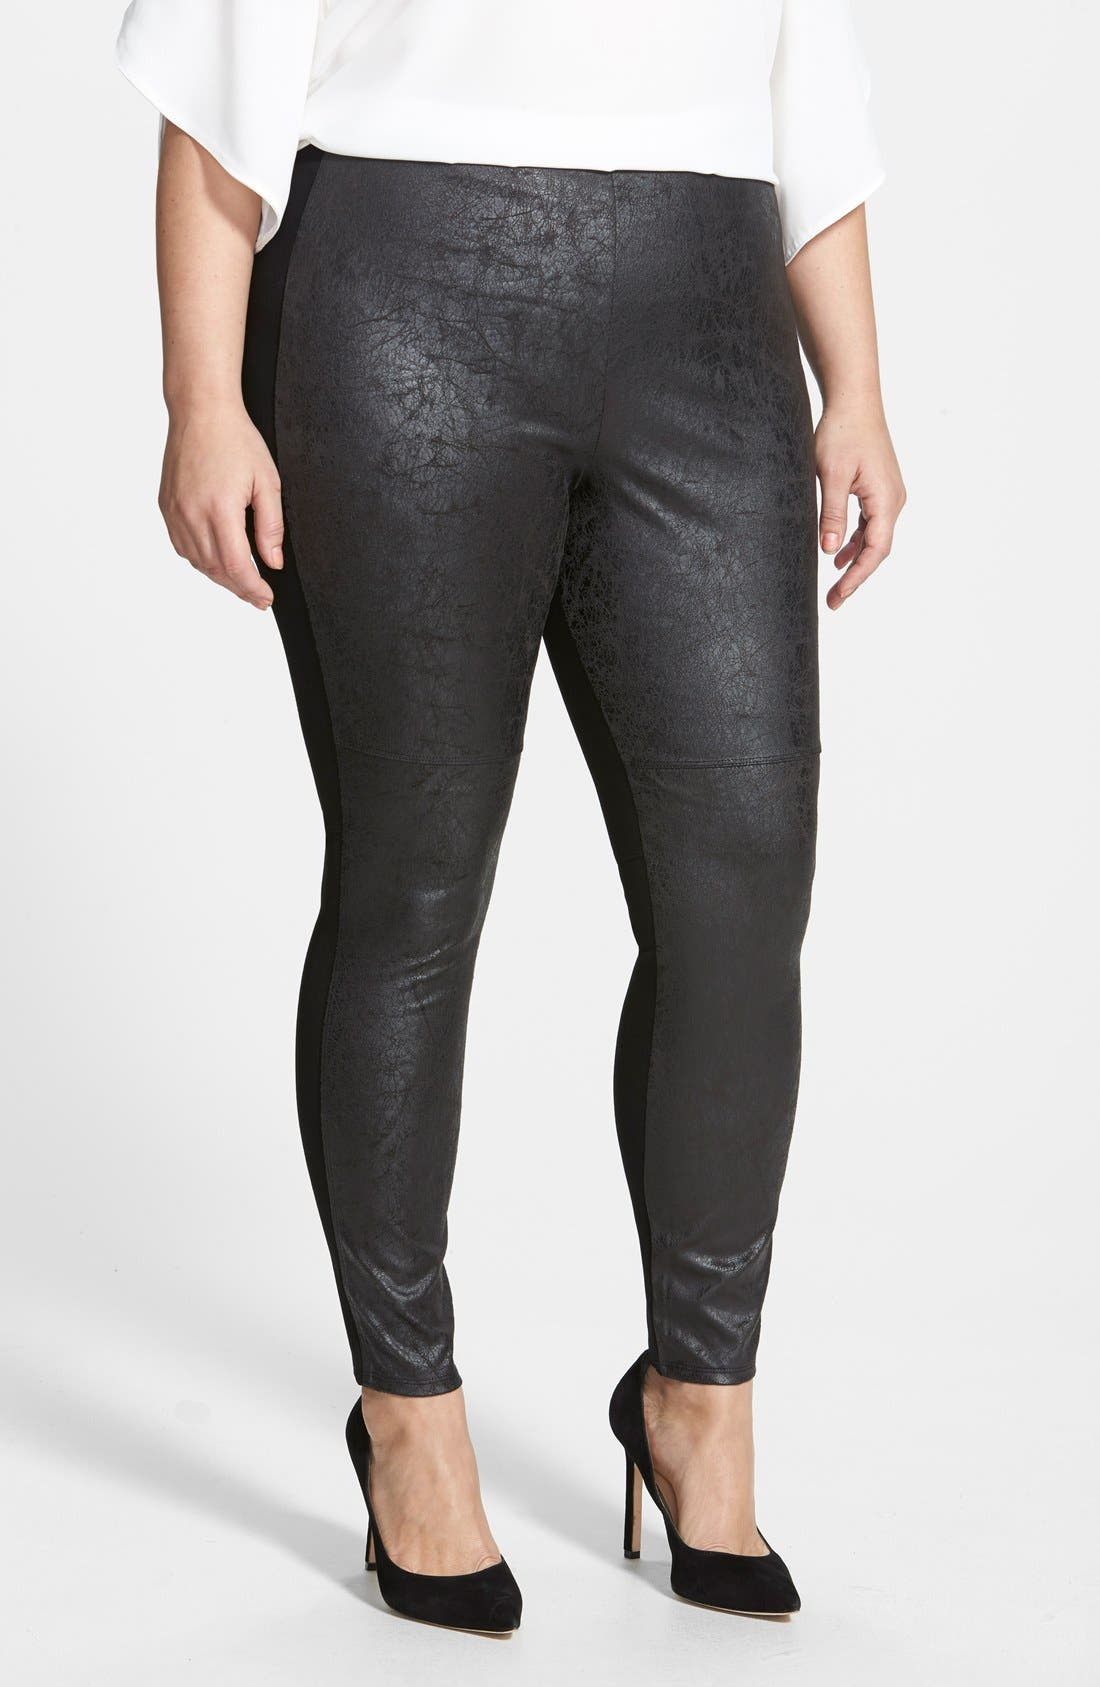 Alternate Image 1 Selected - Lyssé Distressed Faux Leather & Ponte Knit Leggings (Plus Size)